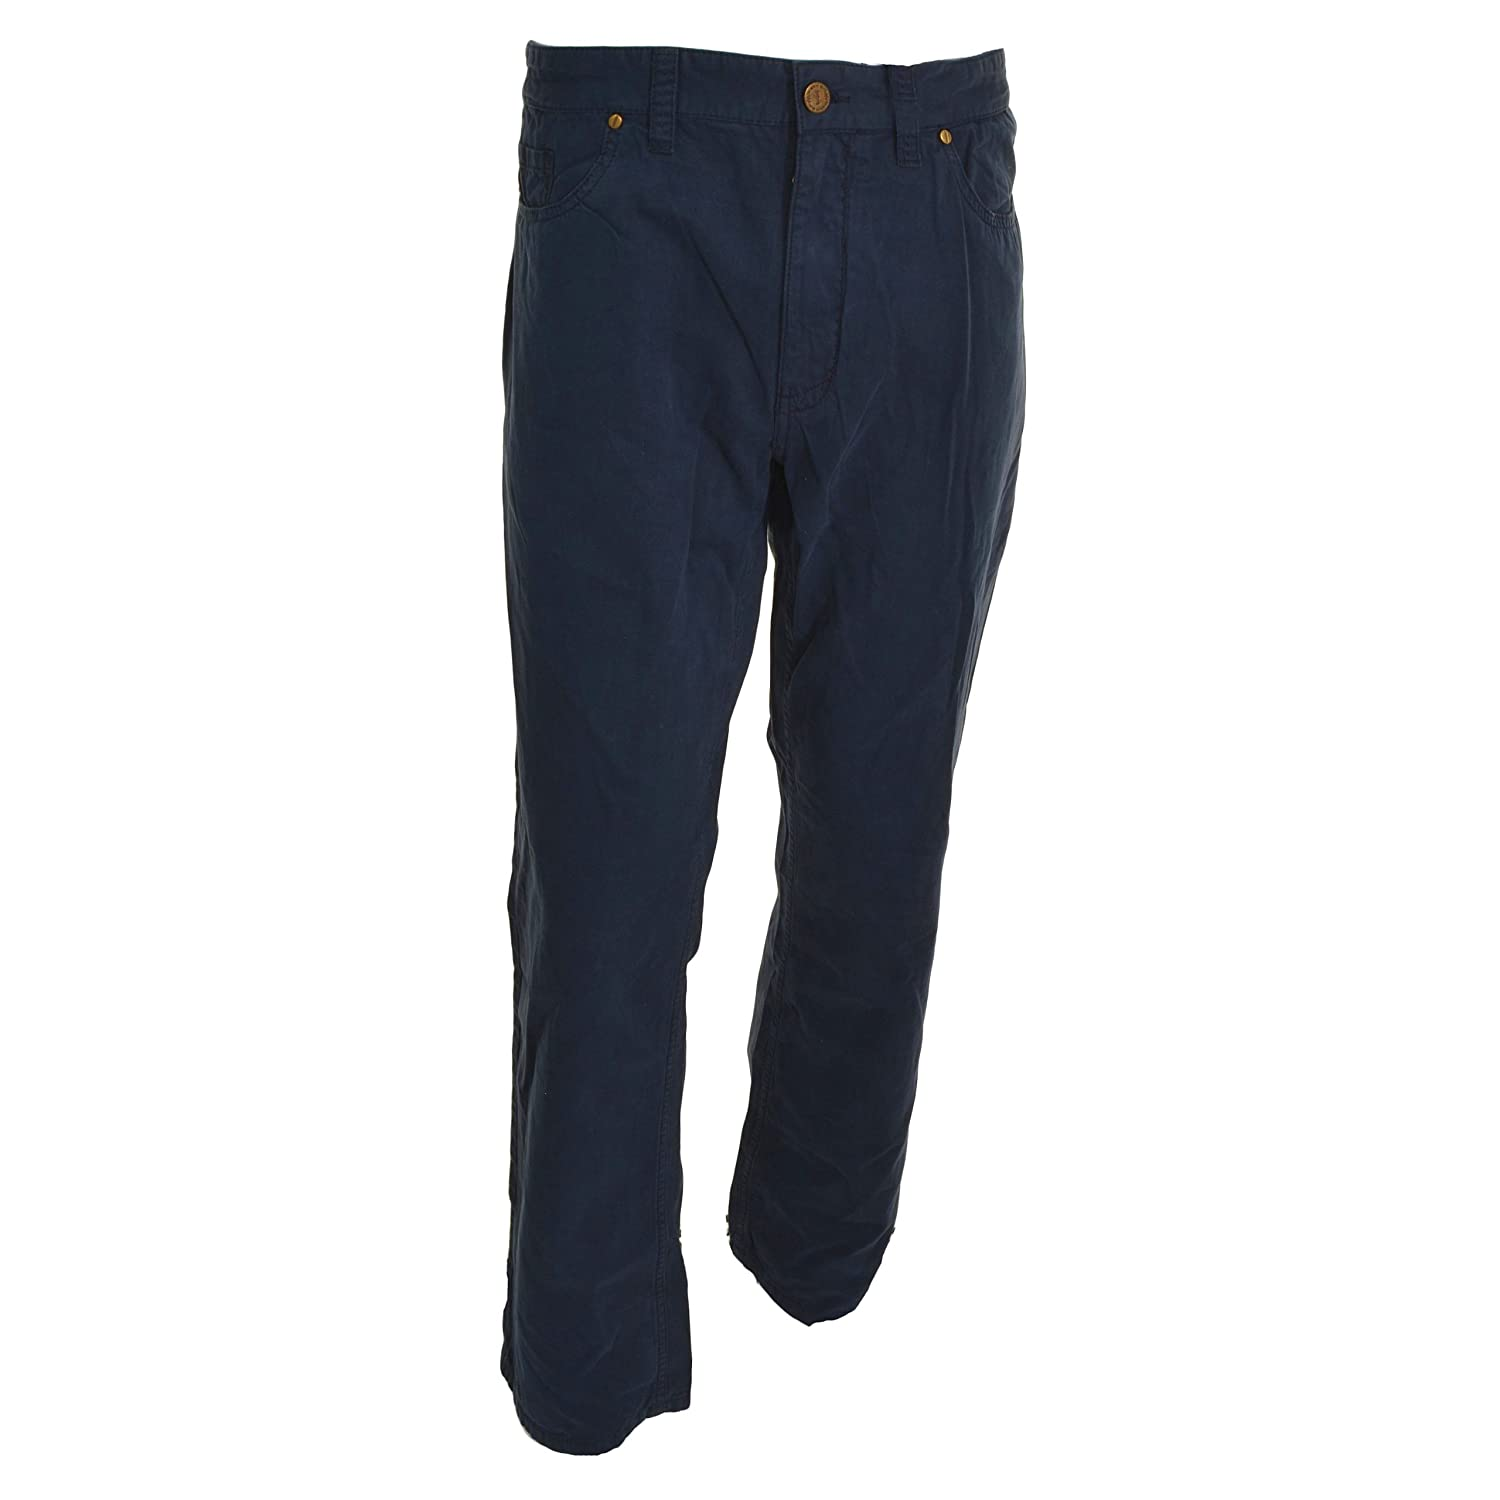 The New Ivy Brand Vintage Classics 5 Pocket Pants